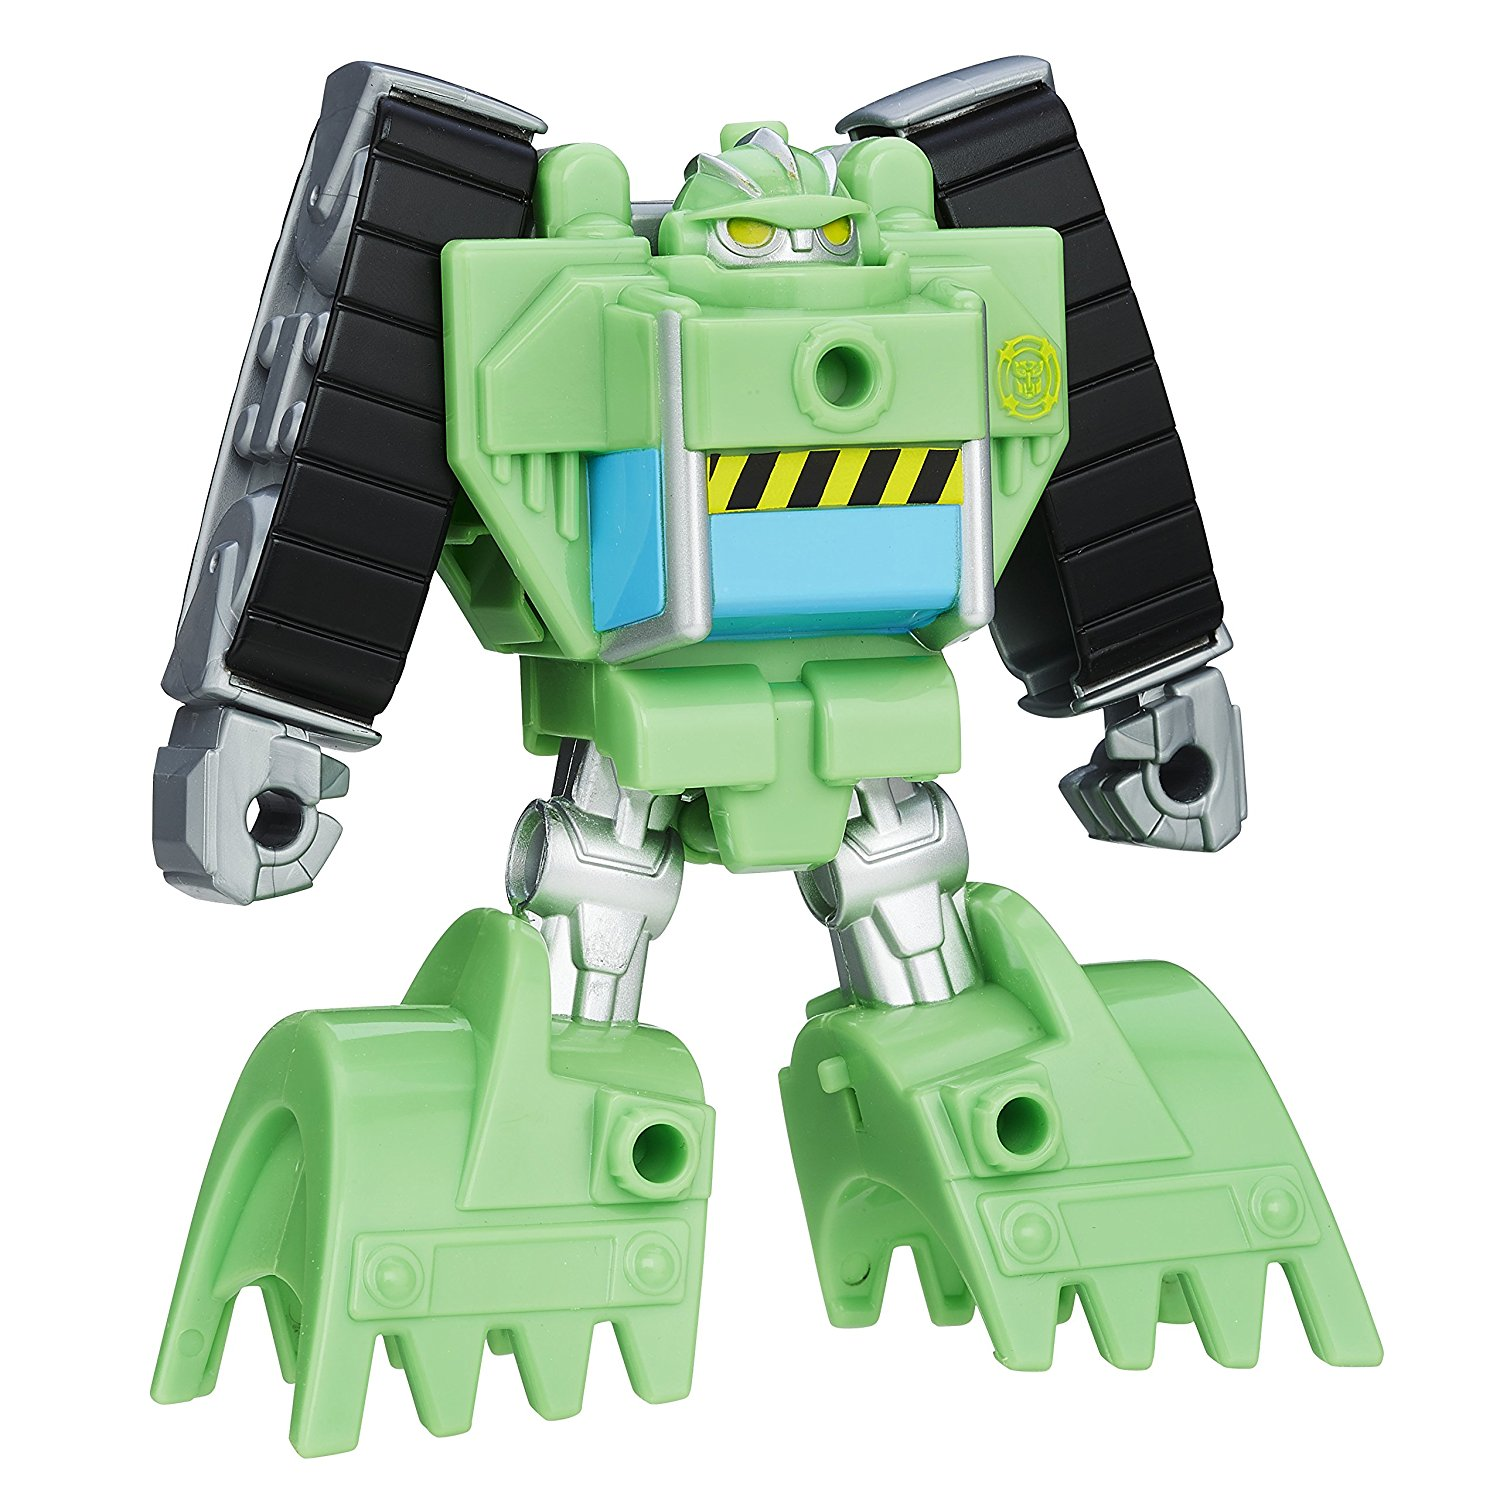 Heroes Transformers Rescue Bots Rescan Boulder Construction Bot Action Figure..., By Playskool Ship from US by